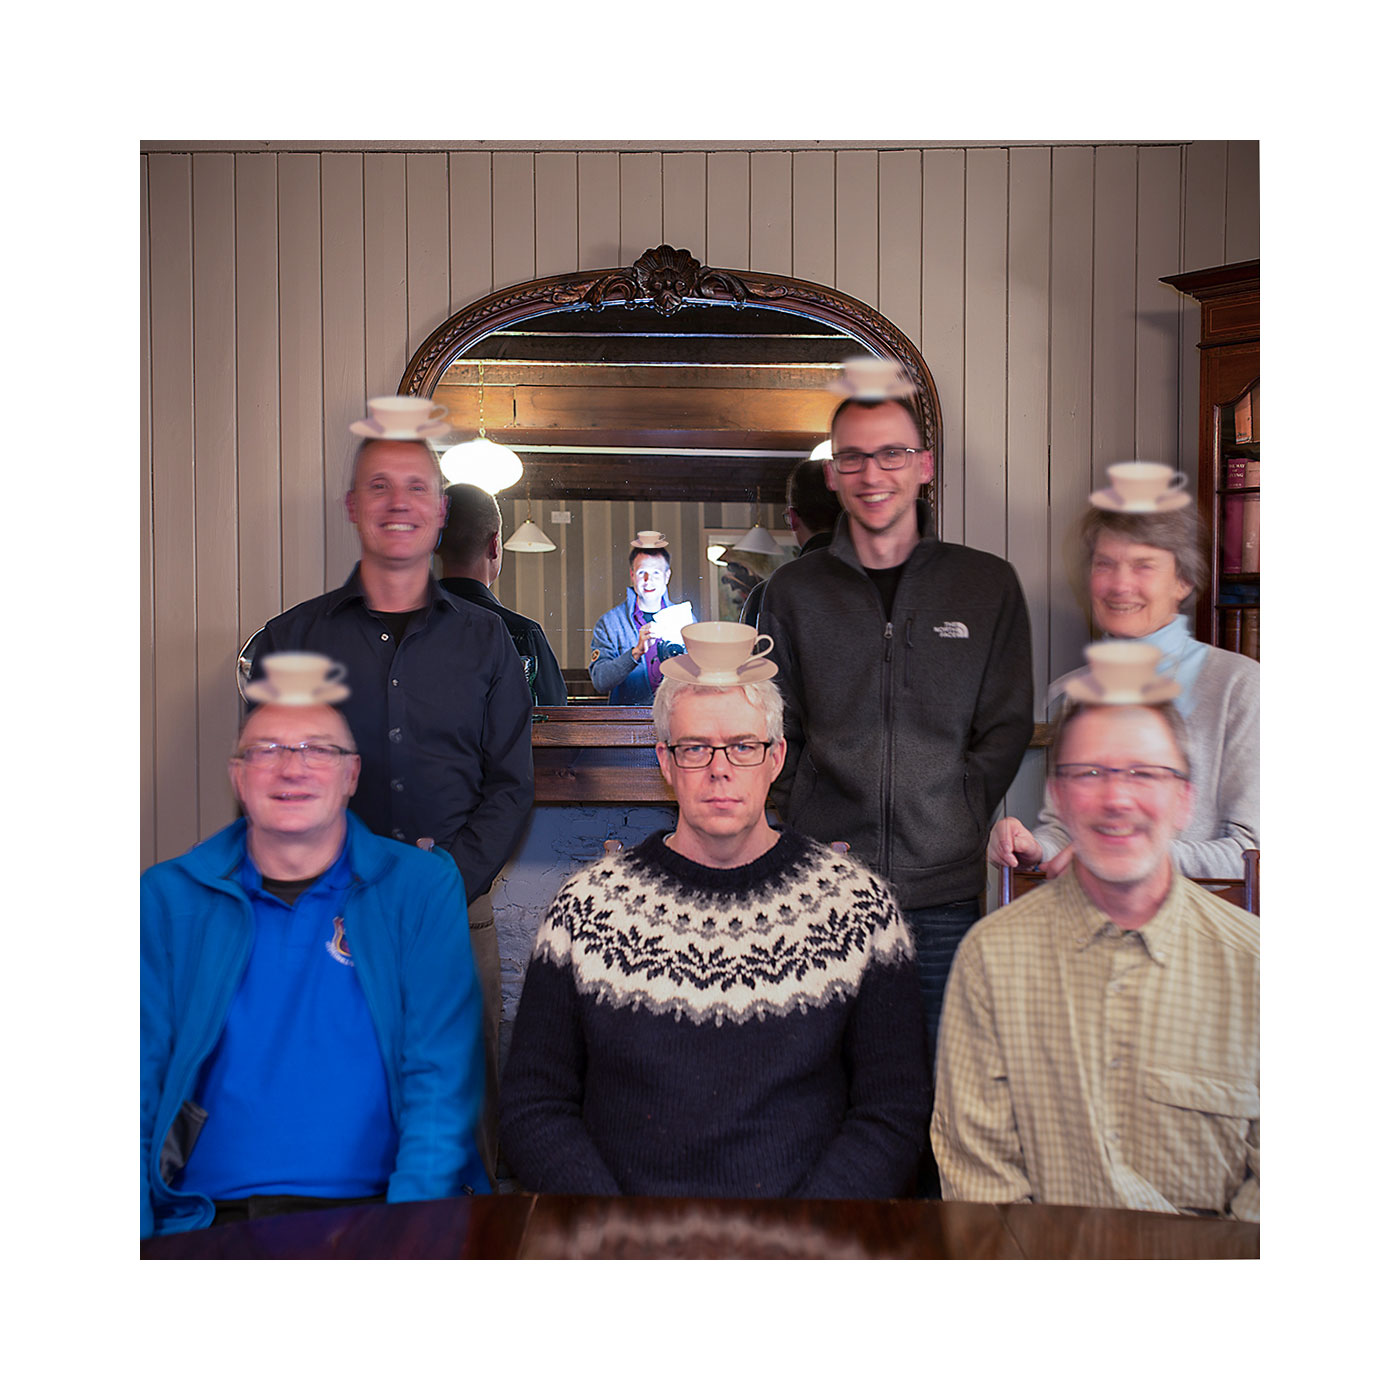 group_portrait_assynt_more_teacups.jpg